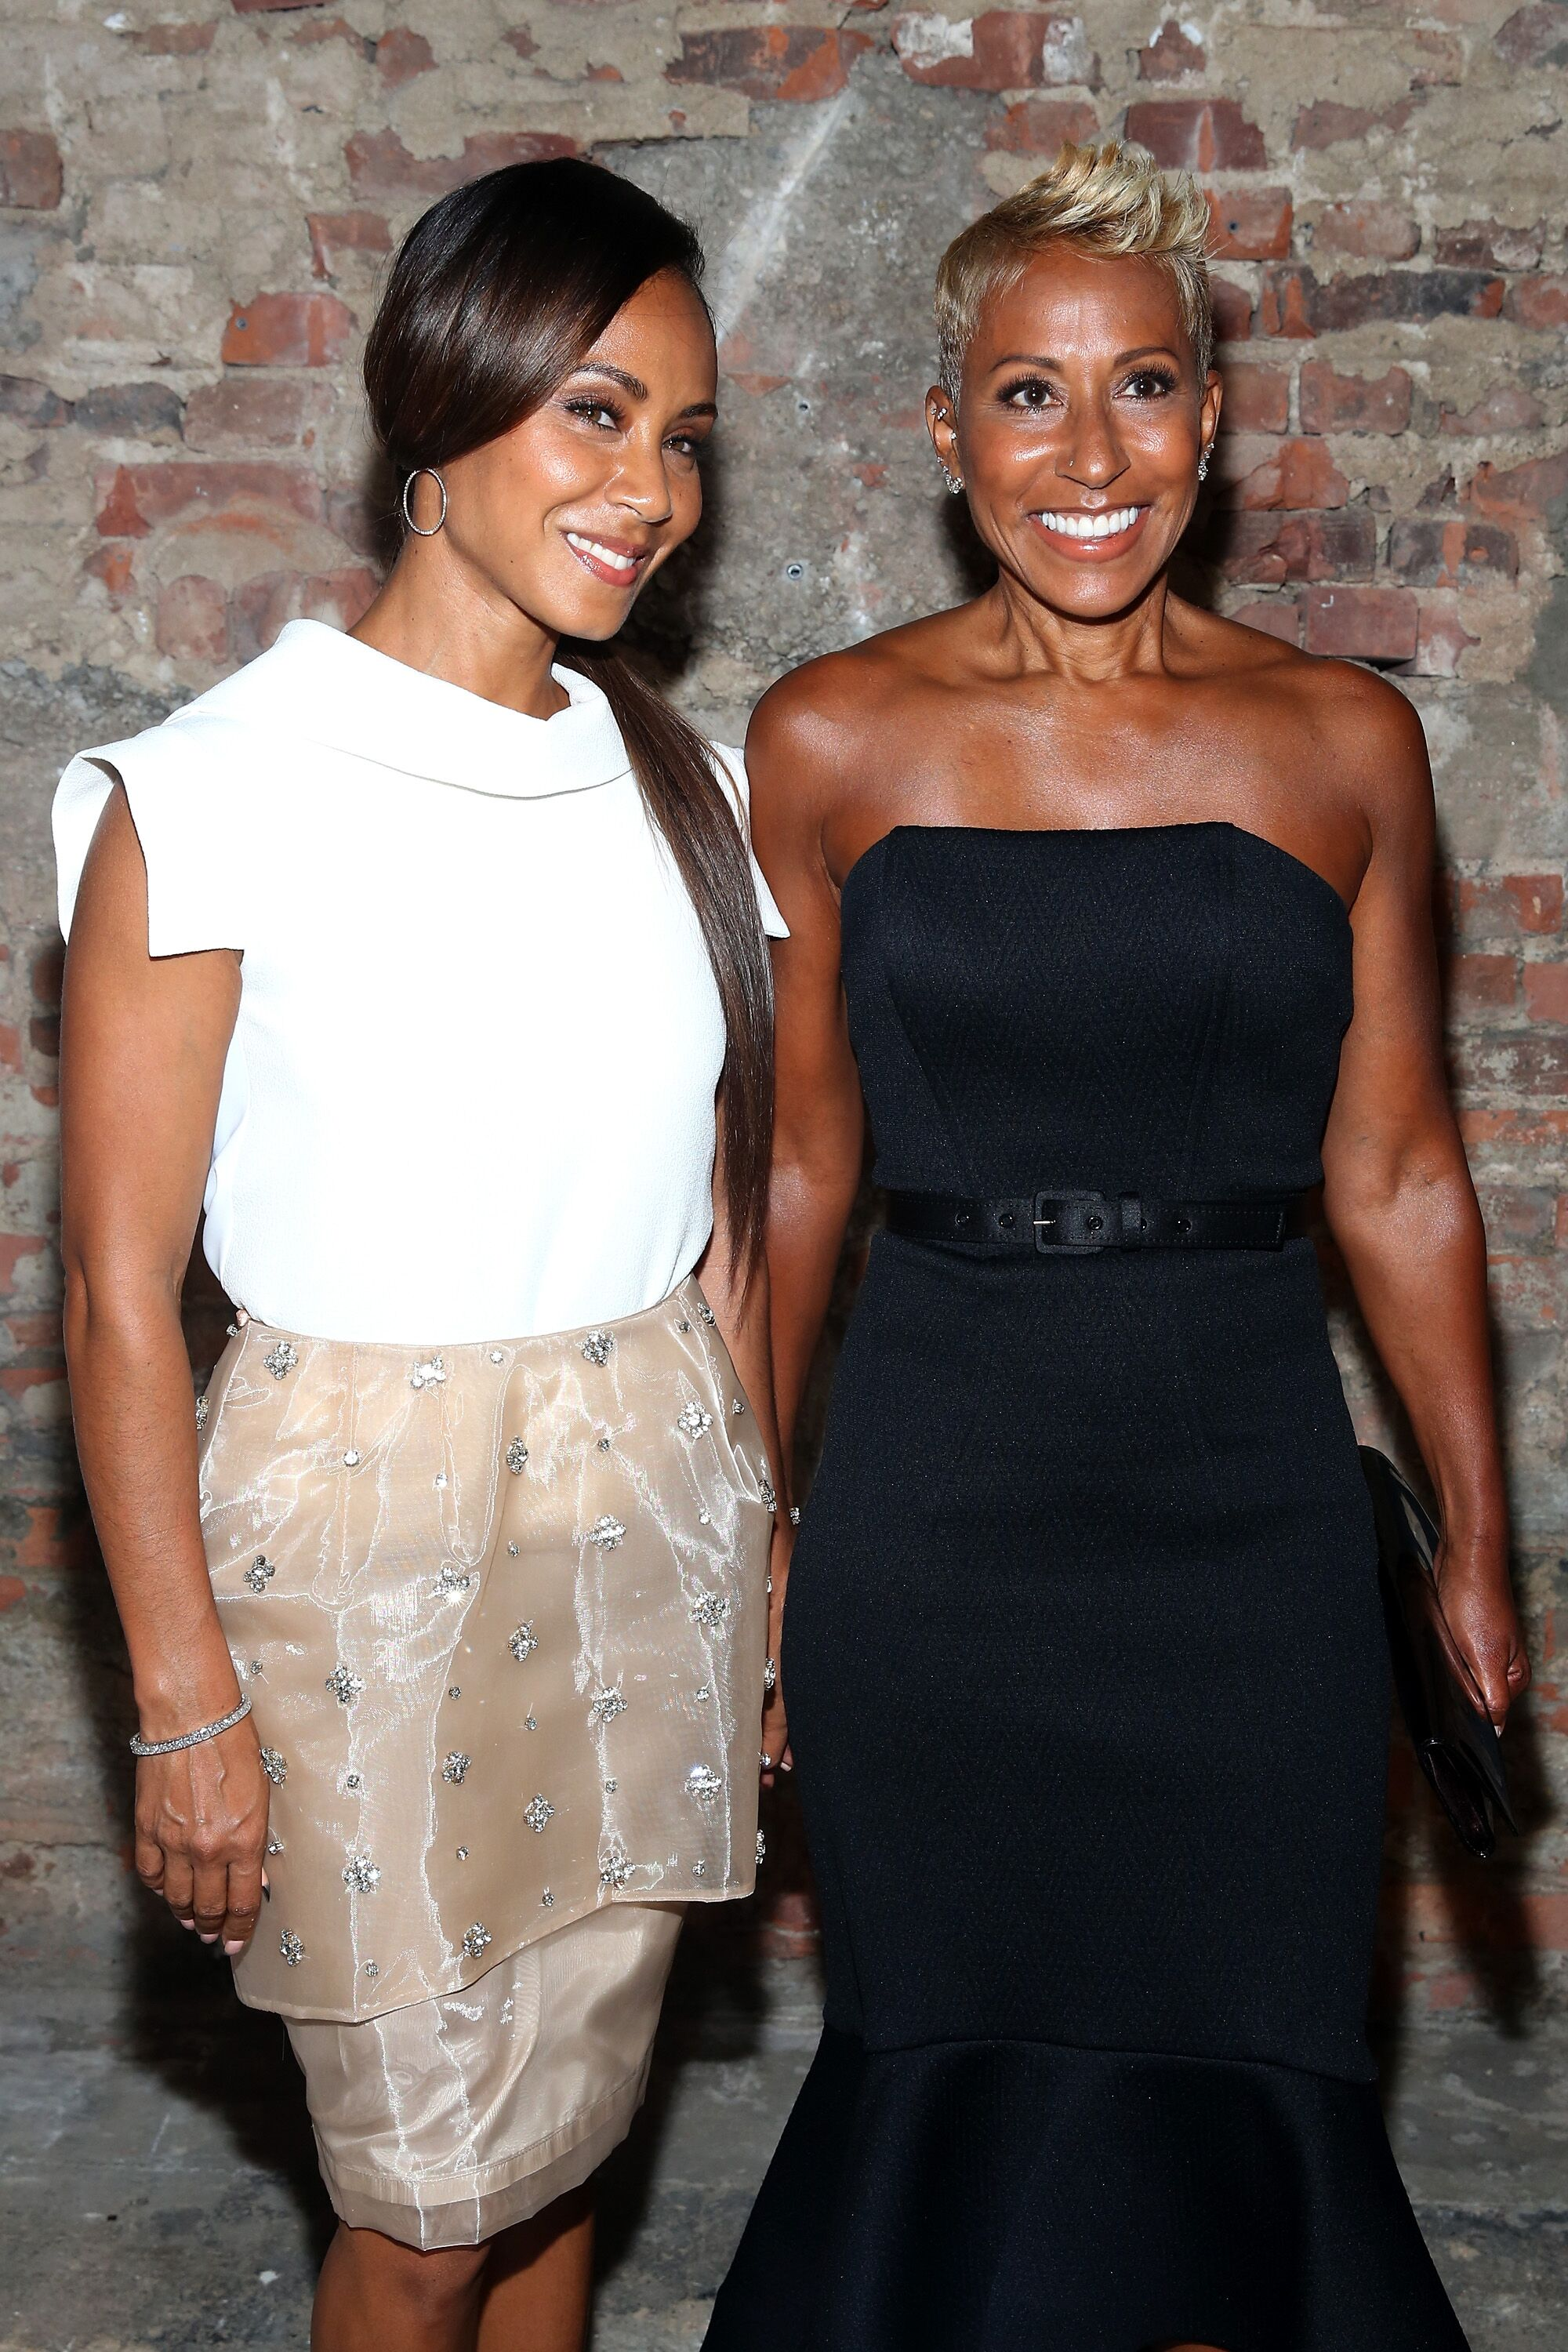 Jada Pinkett Smith (L) and Adrienne Banfield pose backstage at the Christian Siriano fashion show during Mercedes-Benz Fashion Week Spring 2015 at Eyebeam on September 6, 2014 in New York City | Photo: Getty Images